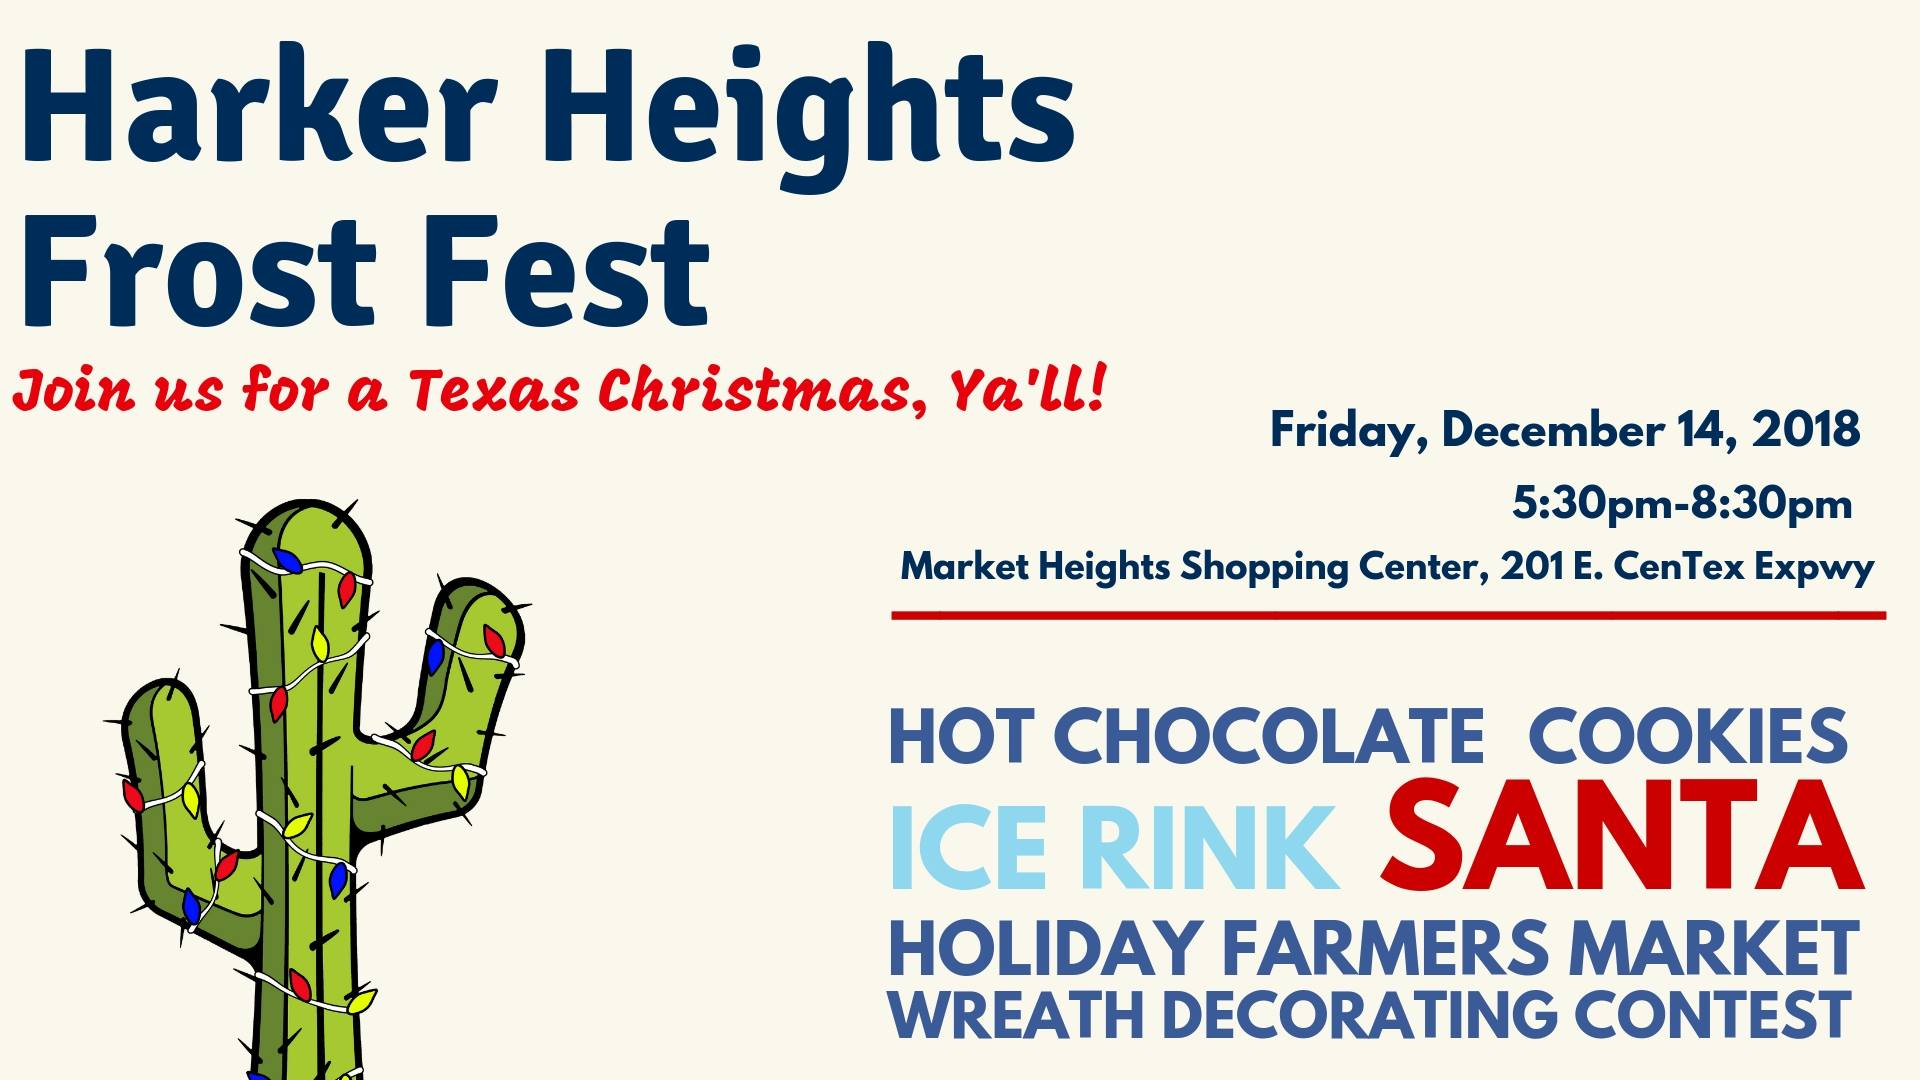 Harker Heights Frost Fest